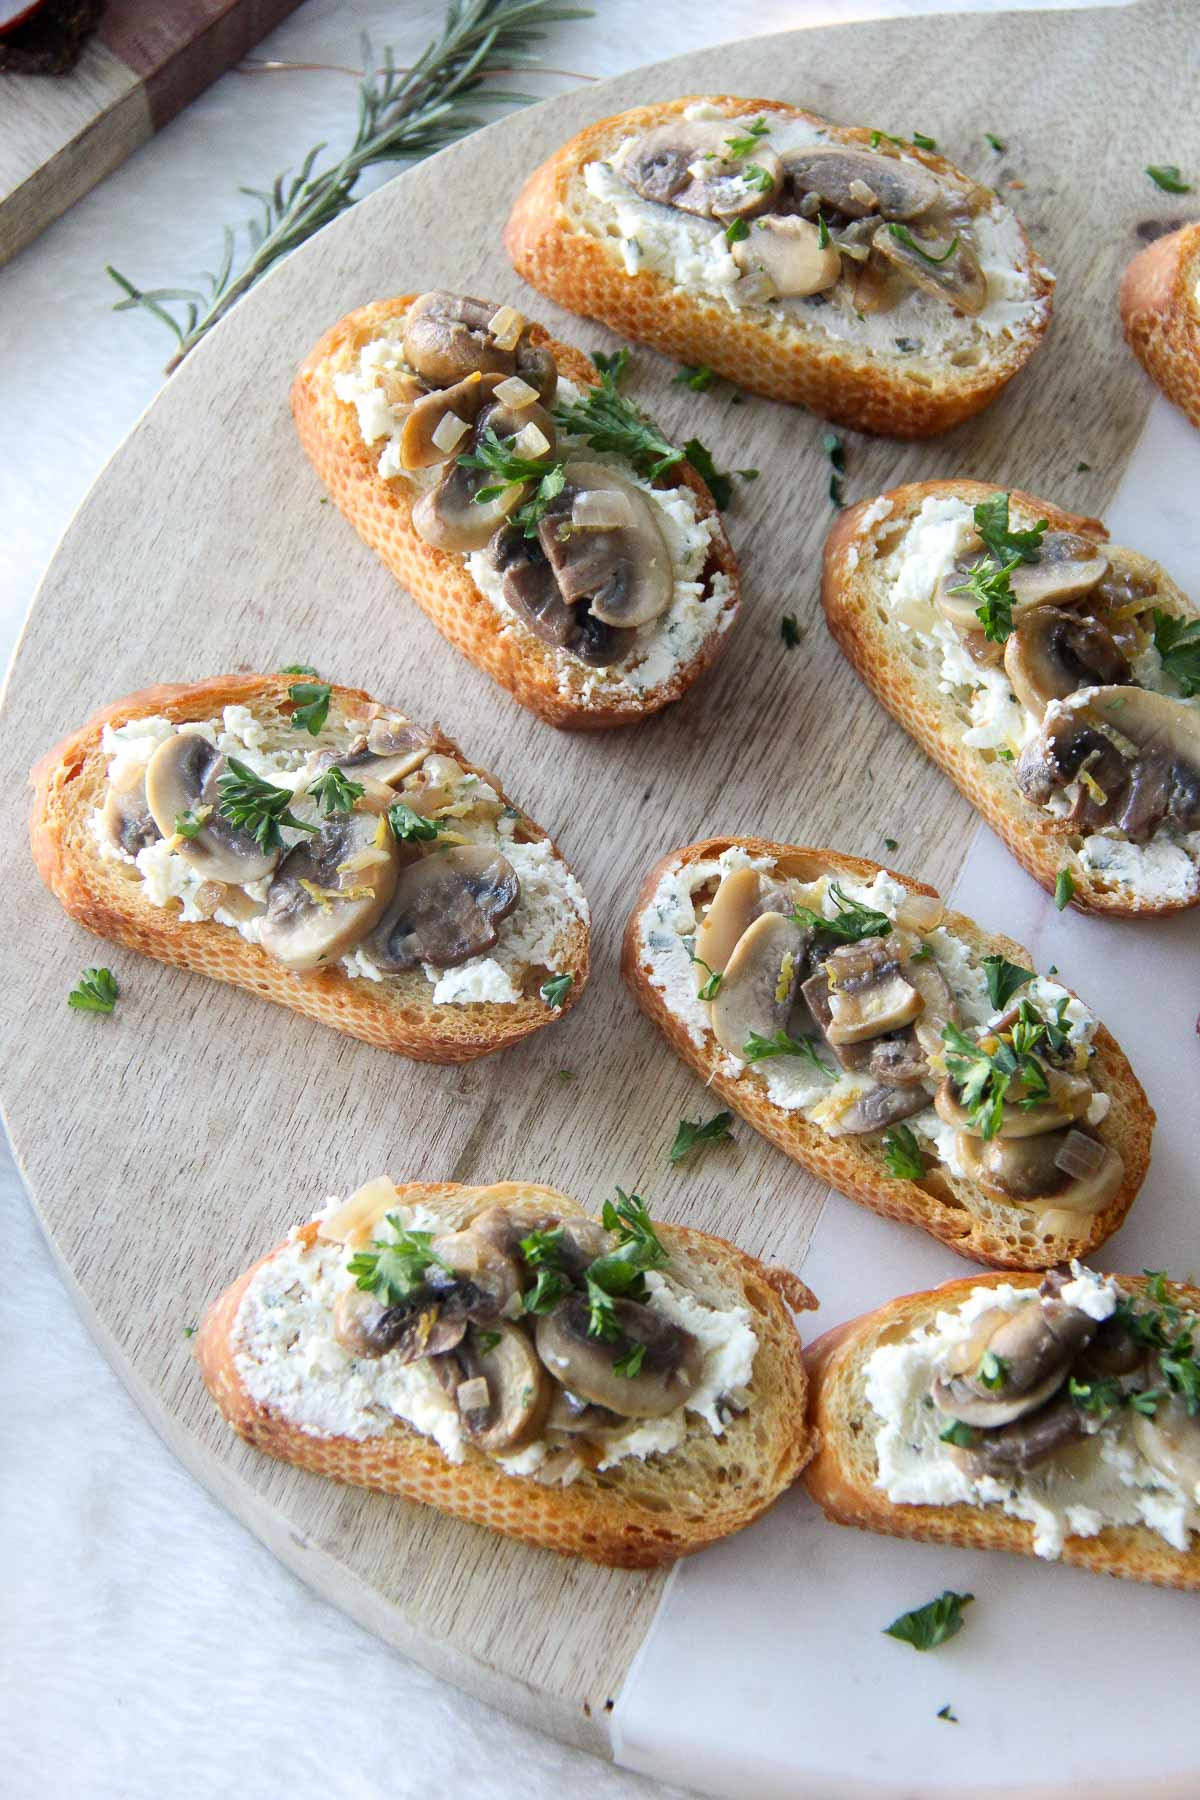 Lemony Mushroom Crostinis with Shallot & Chive Boursin